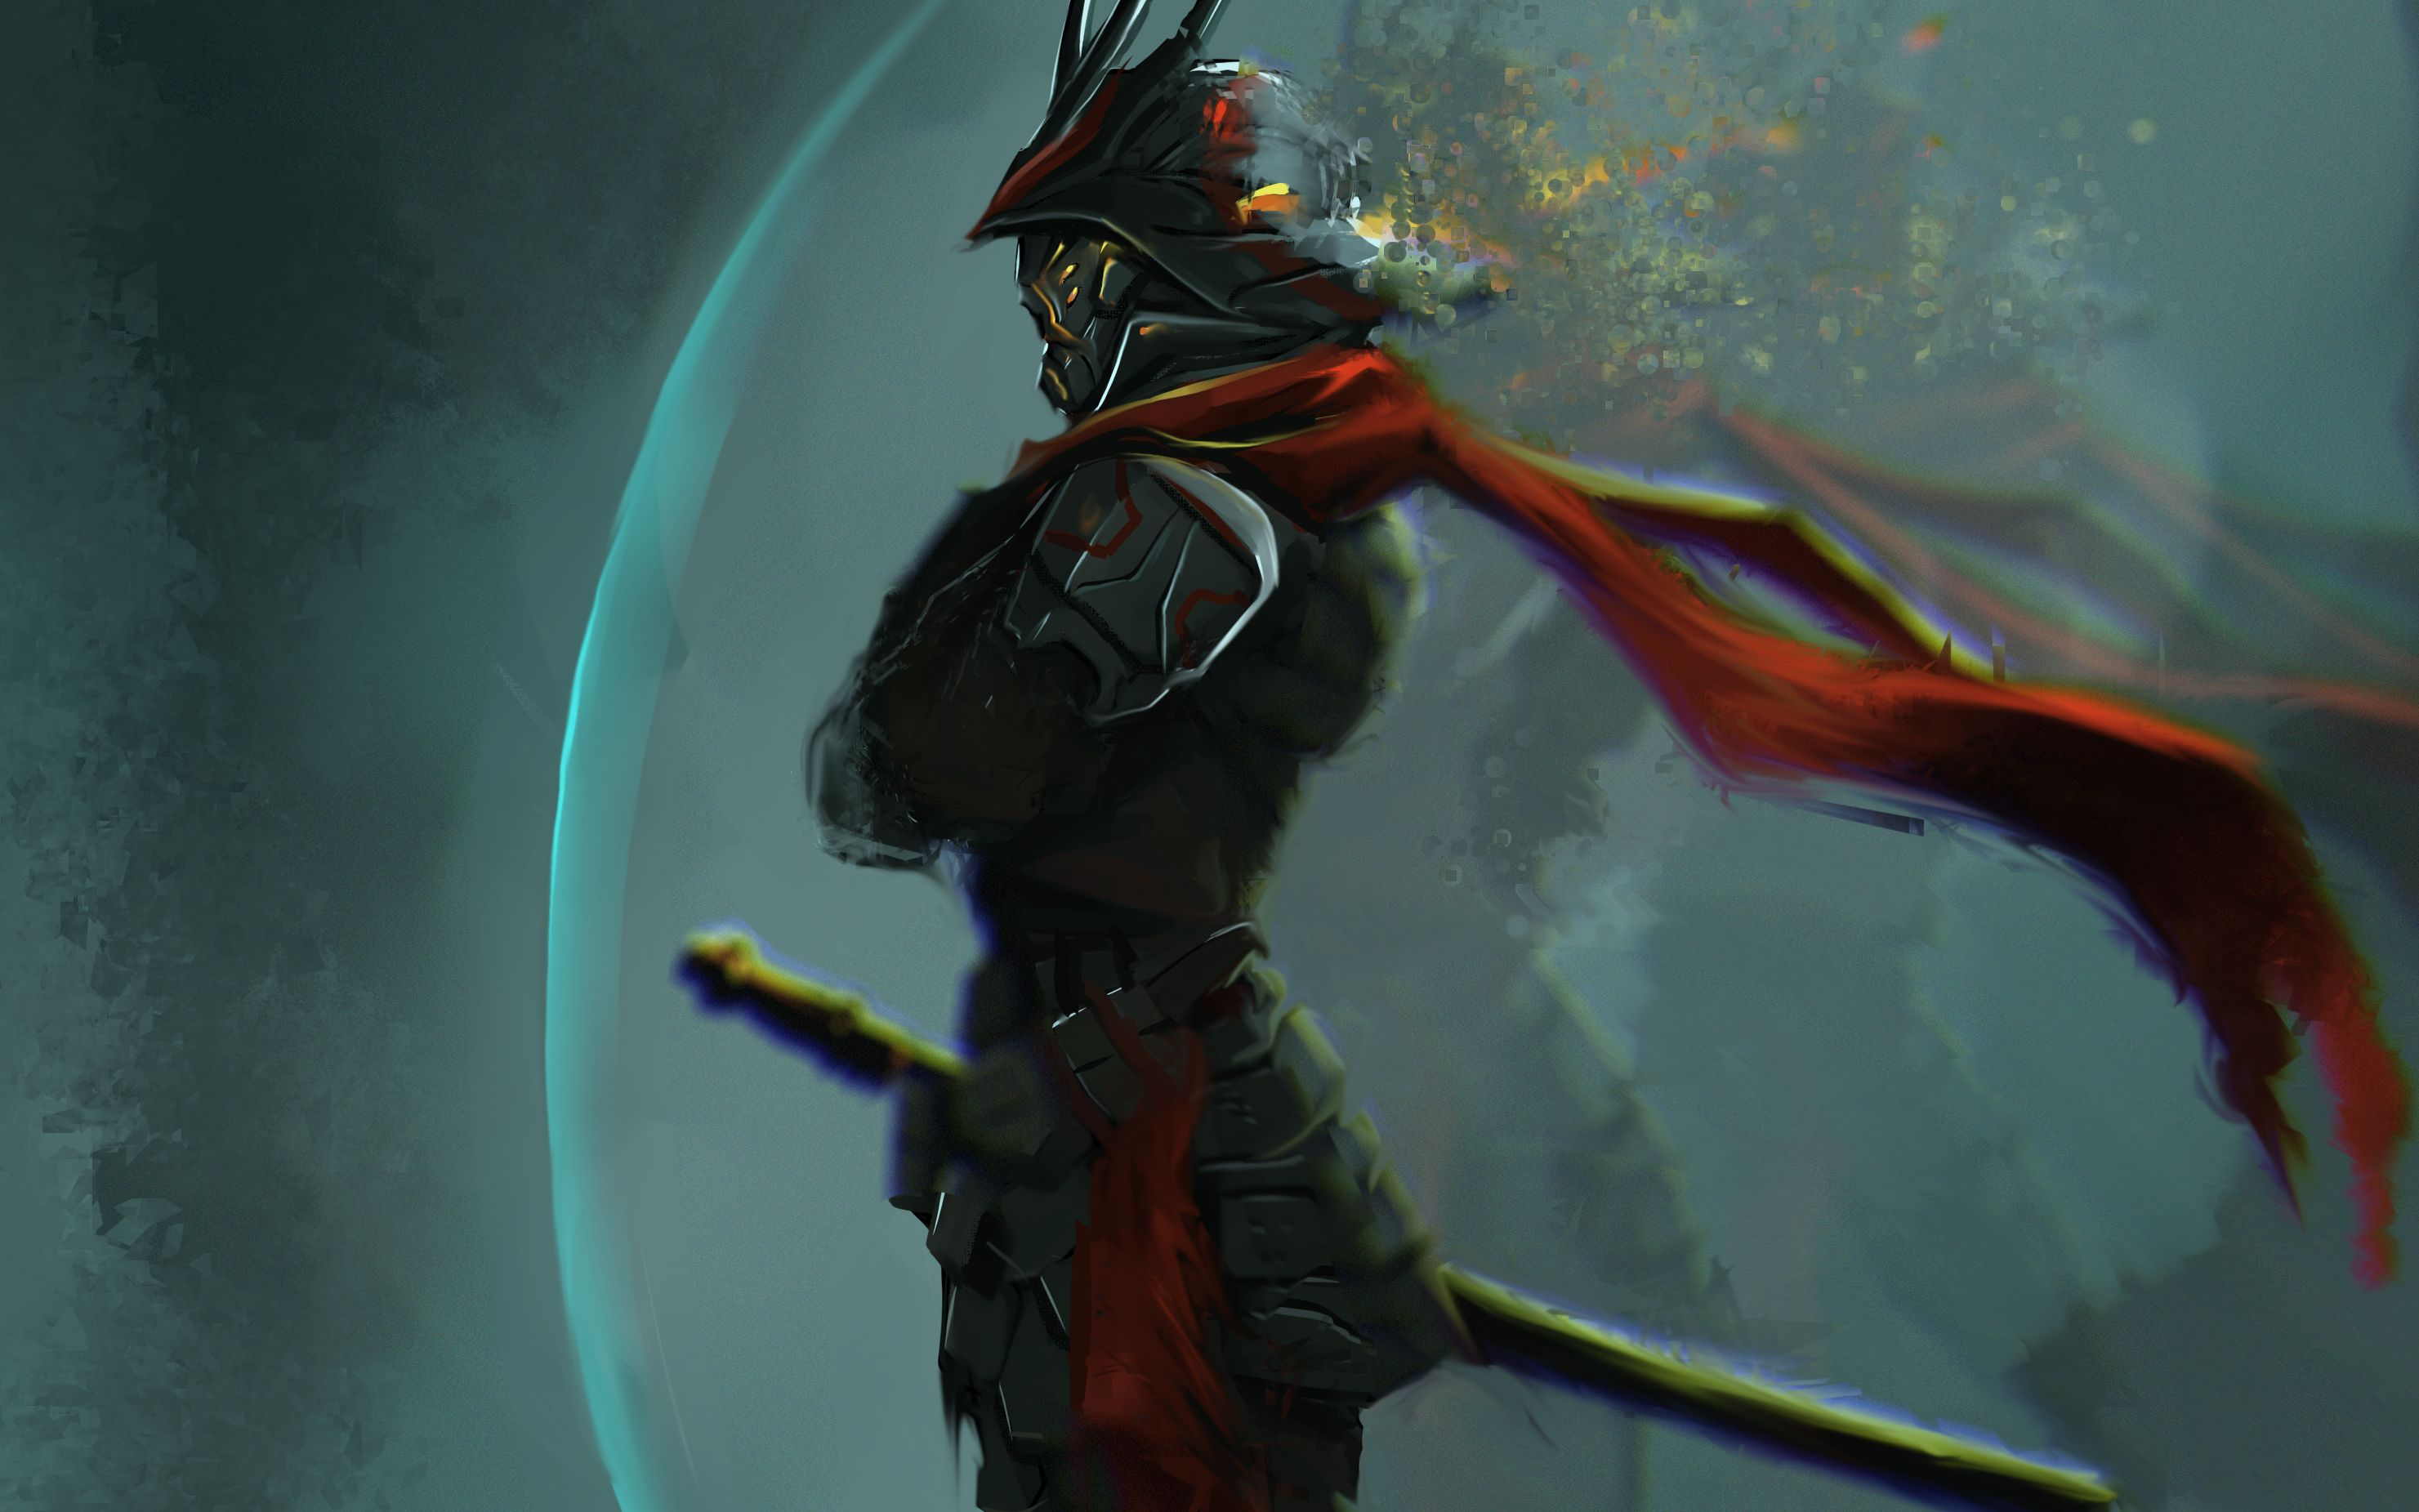 Cyber Samurai Wallpapers Top Free Cyber Samurai Backgrounds Wallpaperaccess